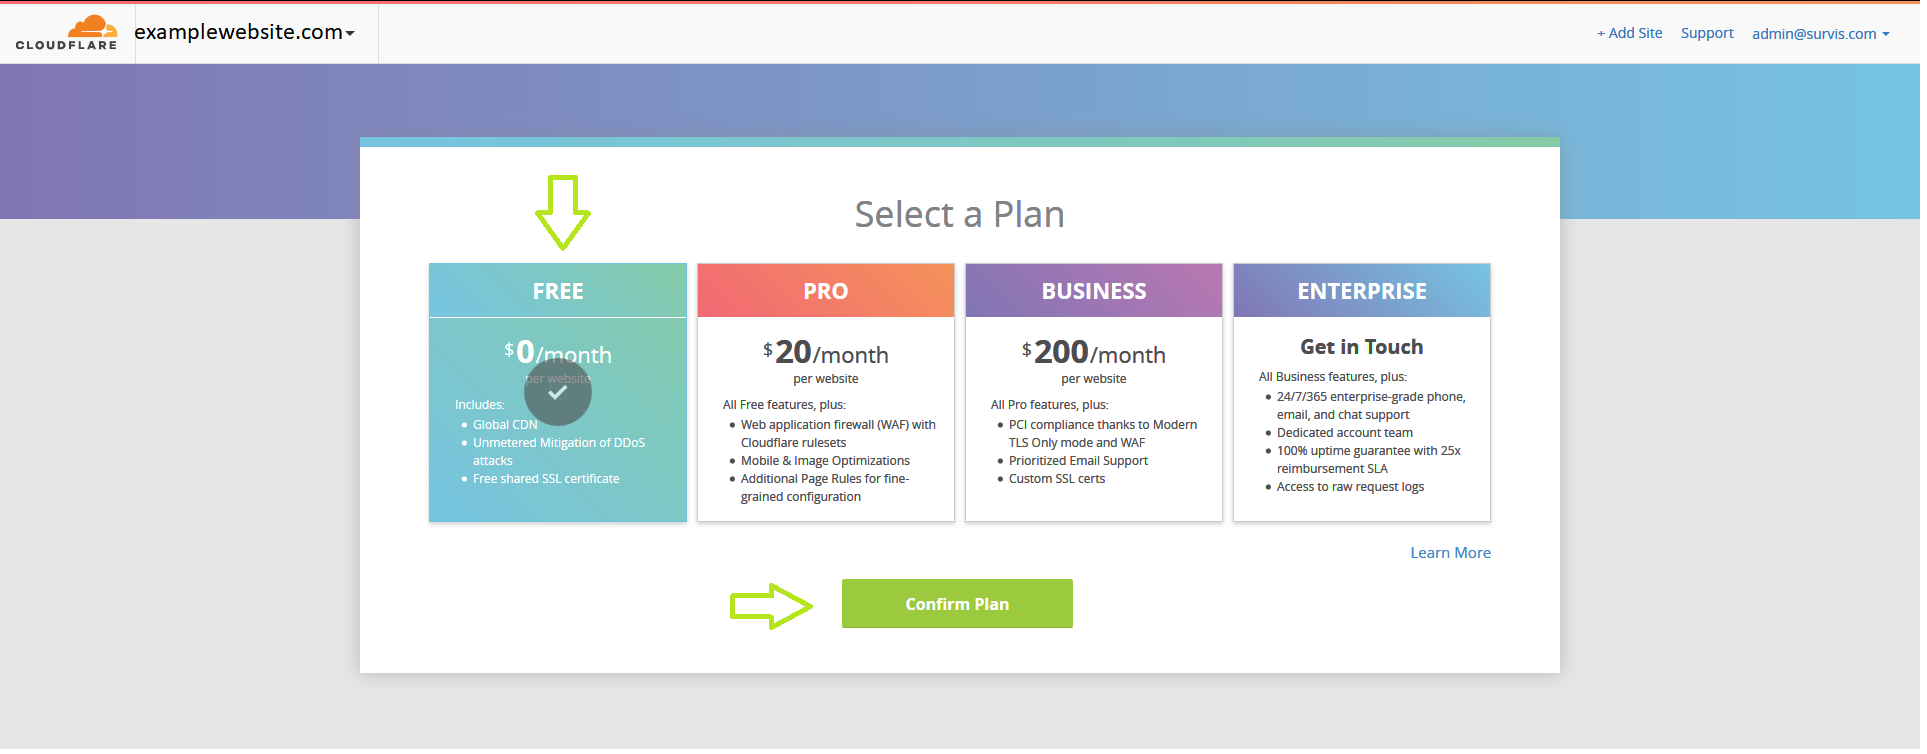 Cloudflare Registration - Select Plan